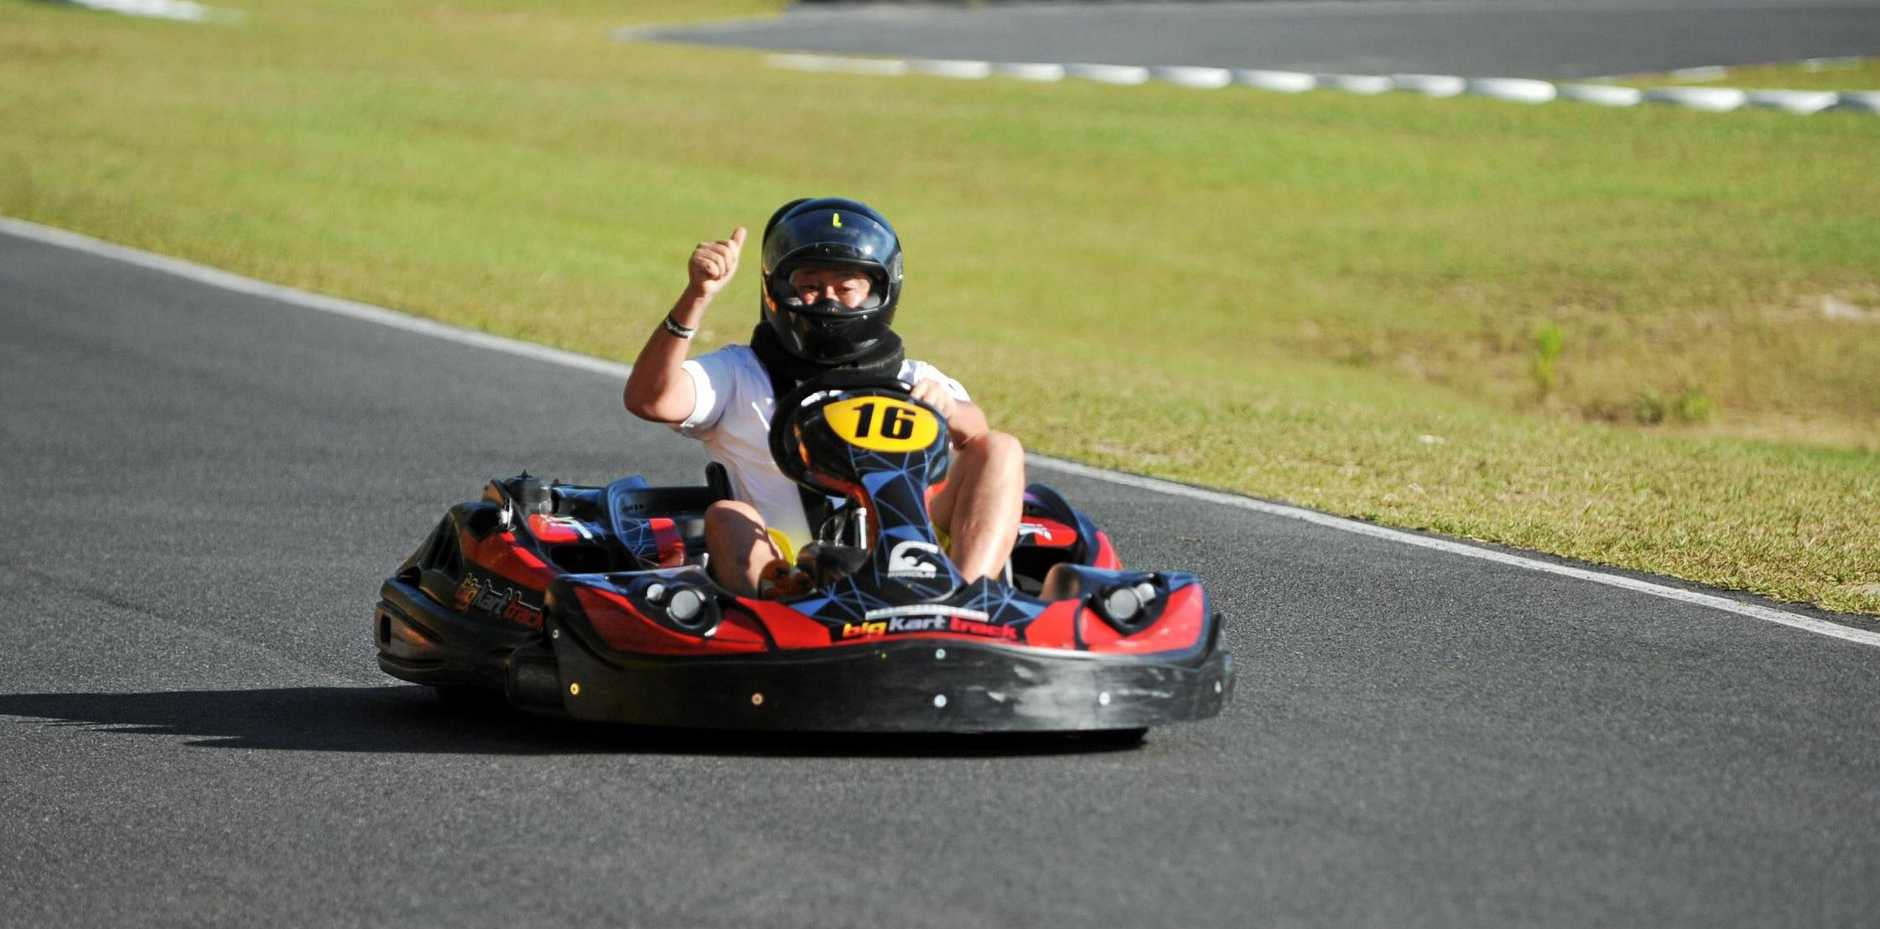 The Big Kart Track at Landsborough has has a major increase in visitor numbers over the summer.